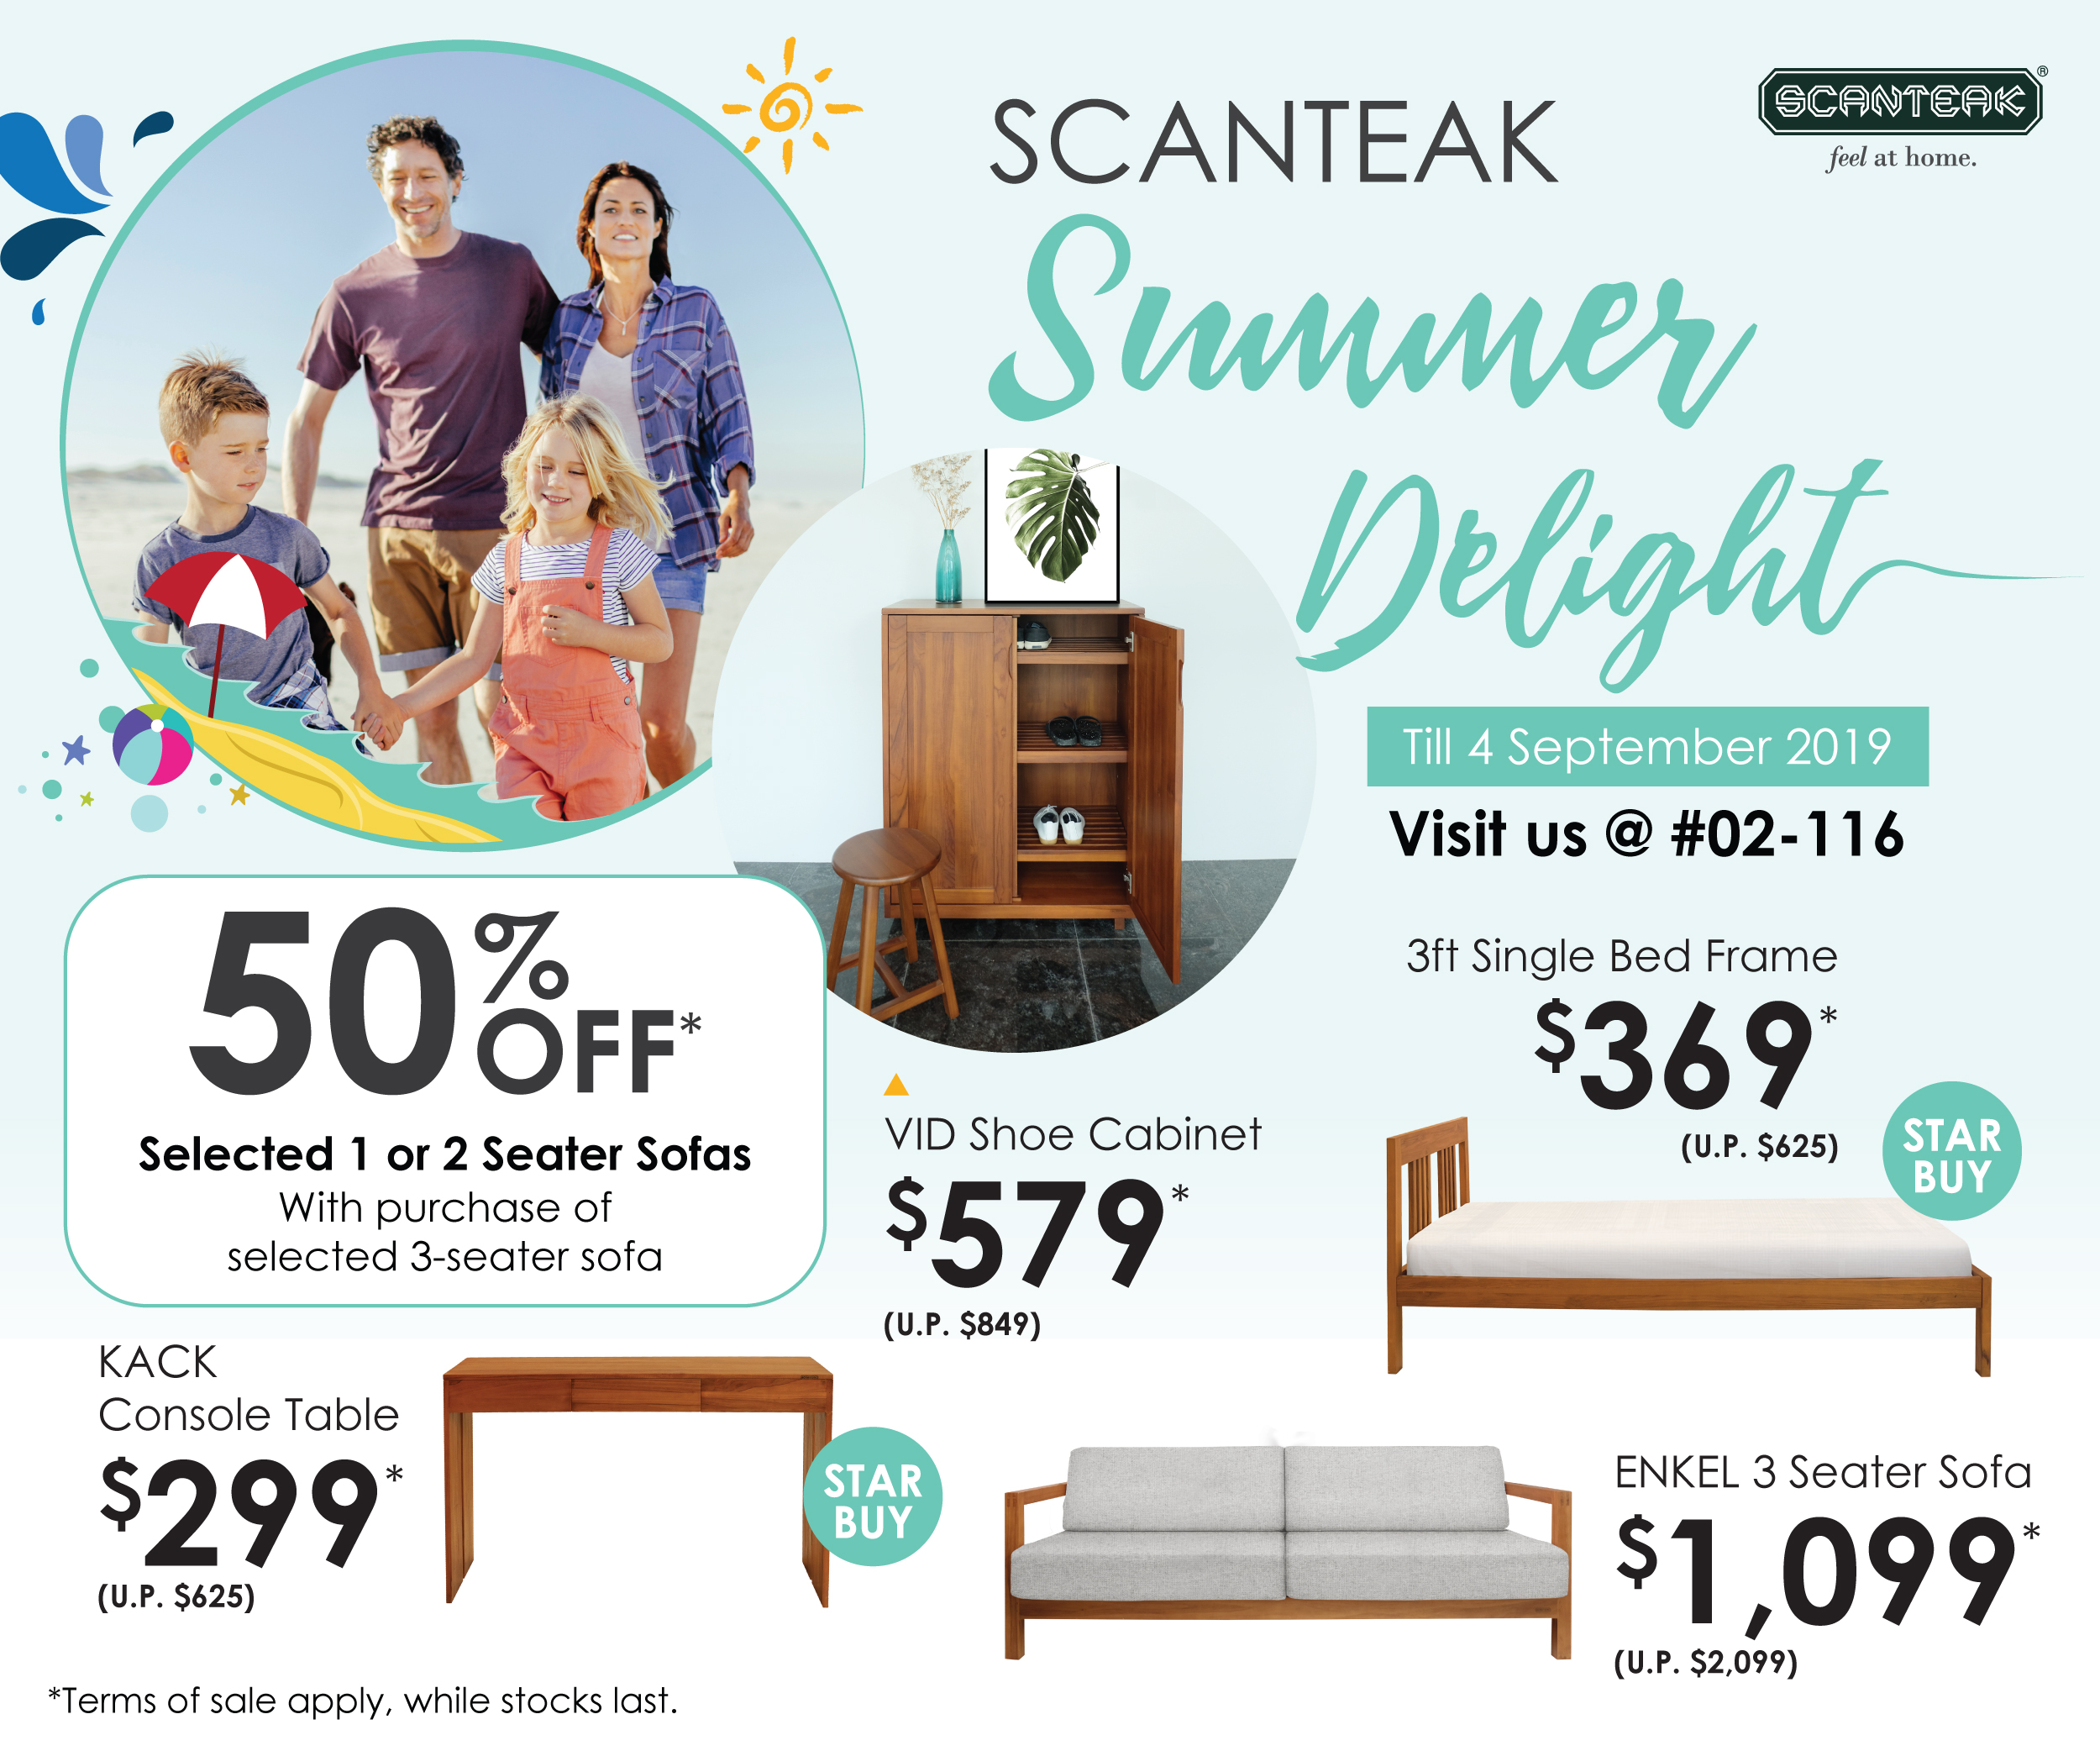 Scanteak Summer Delight 2019